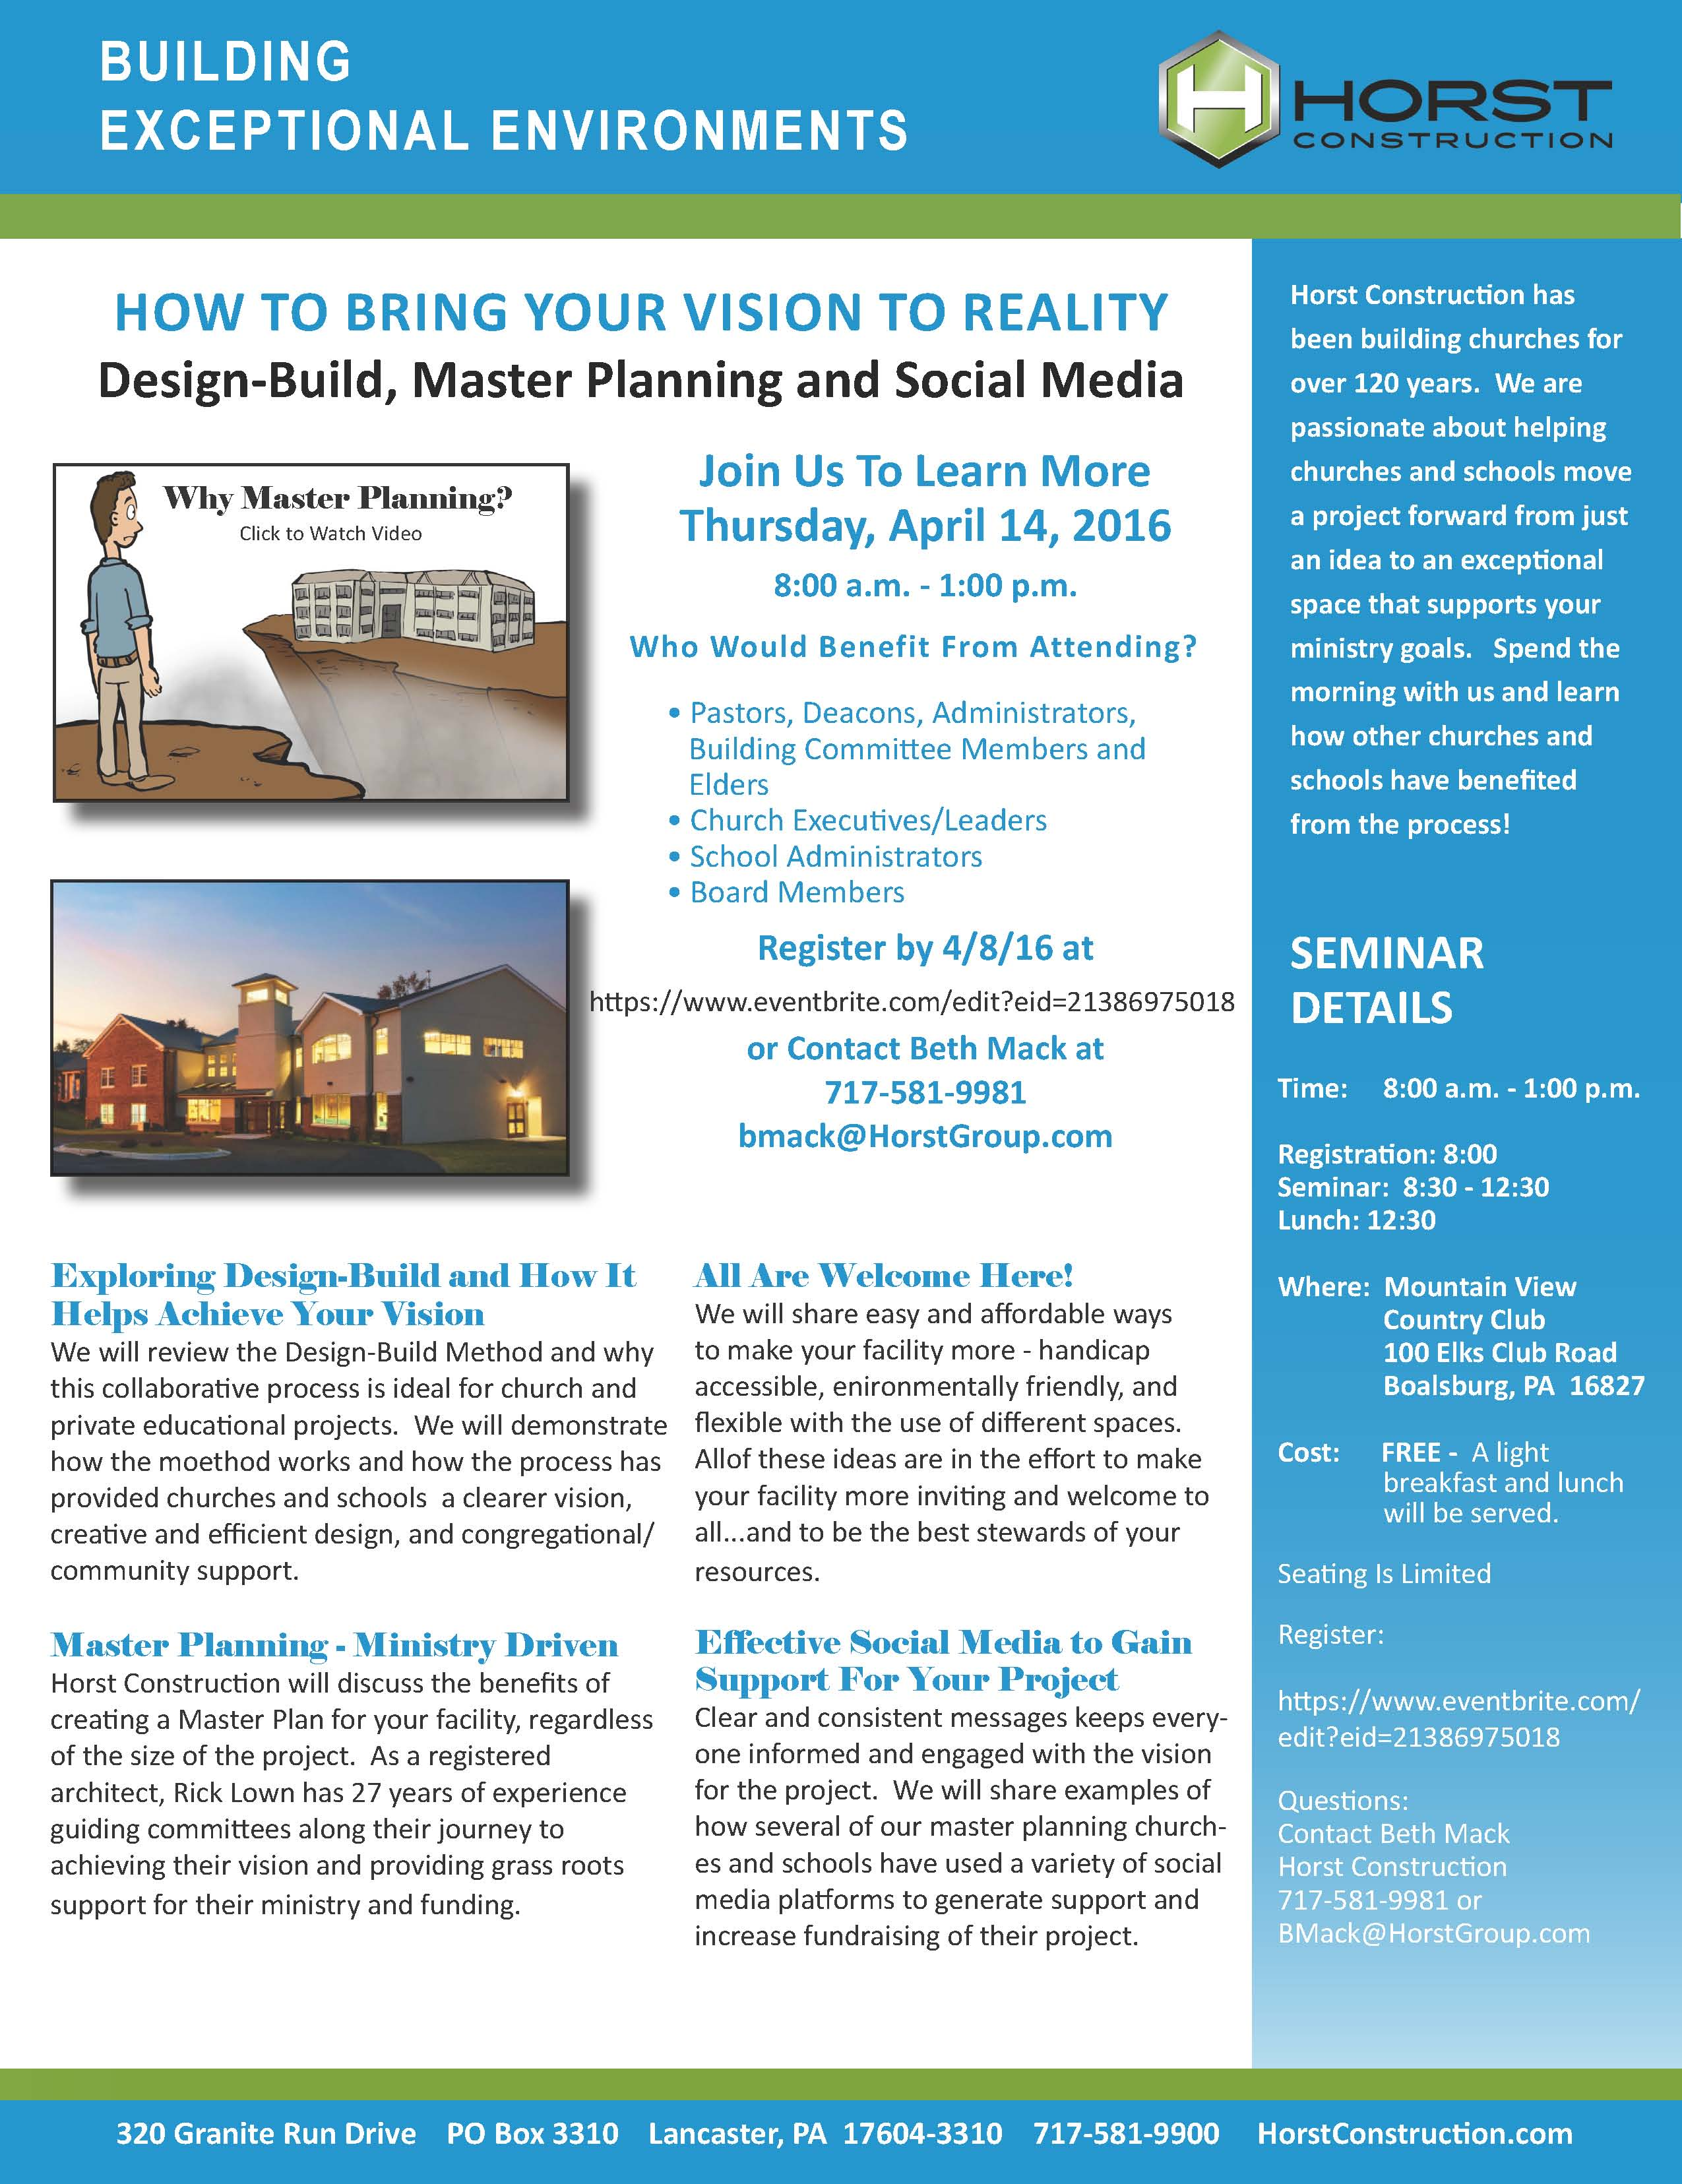 Horst Construction How To Bring Your Vision Reality Seminar Flyer